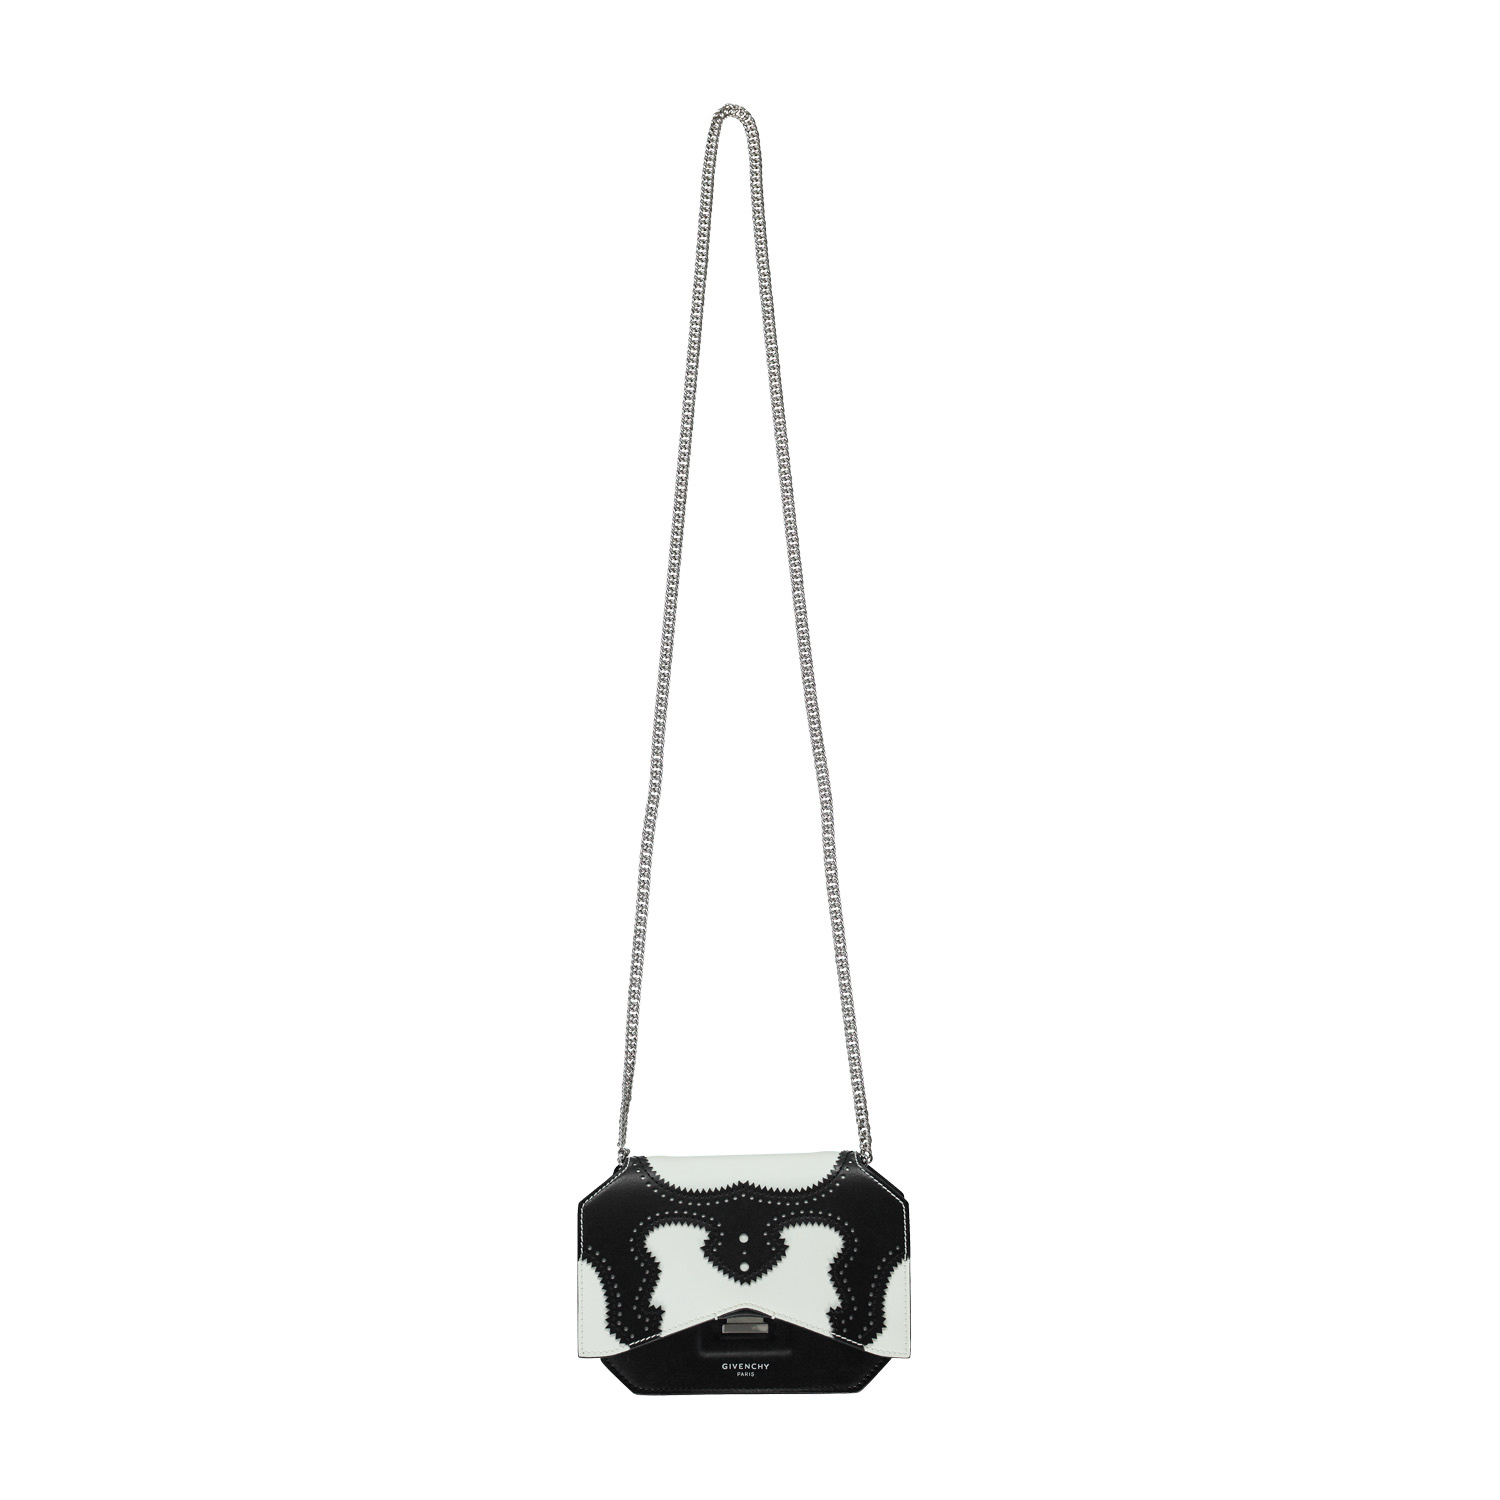 Givenchy Givenchy Black and White Oxford Detail Bow Cut Chain Bag